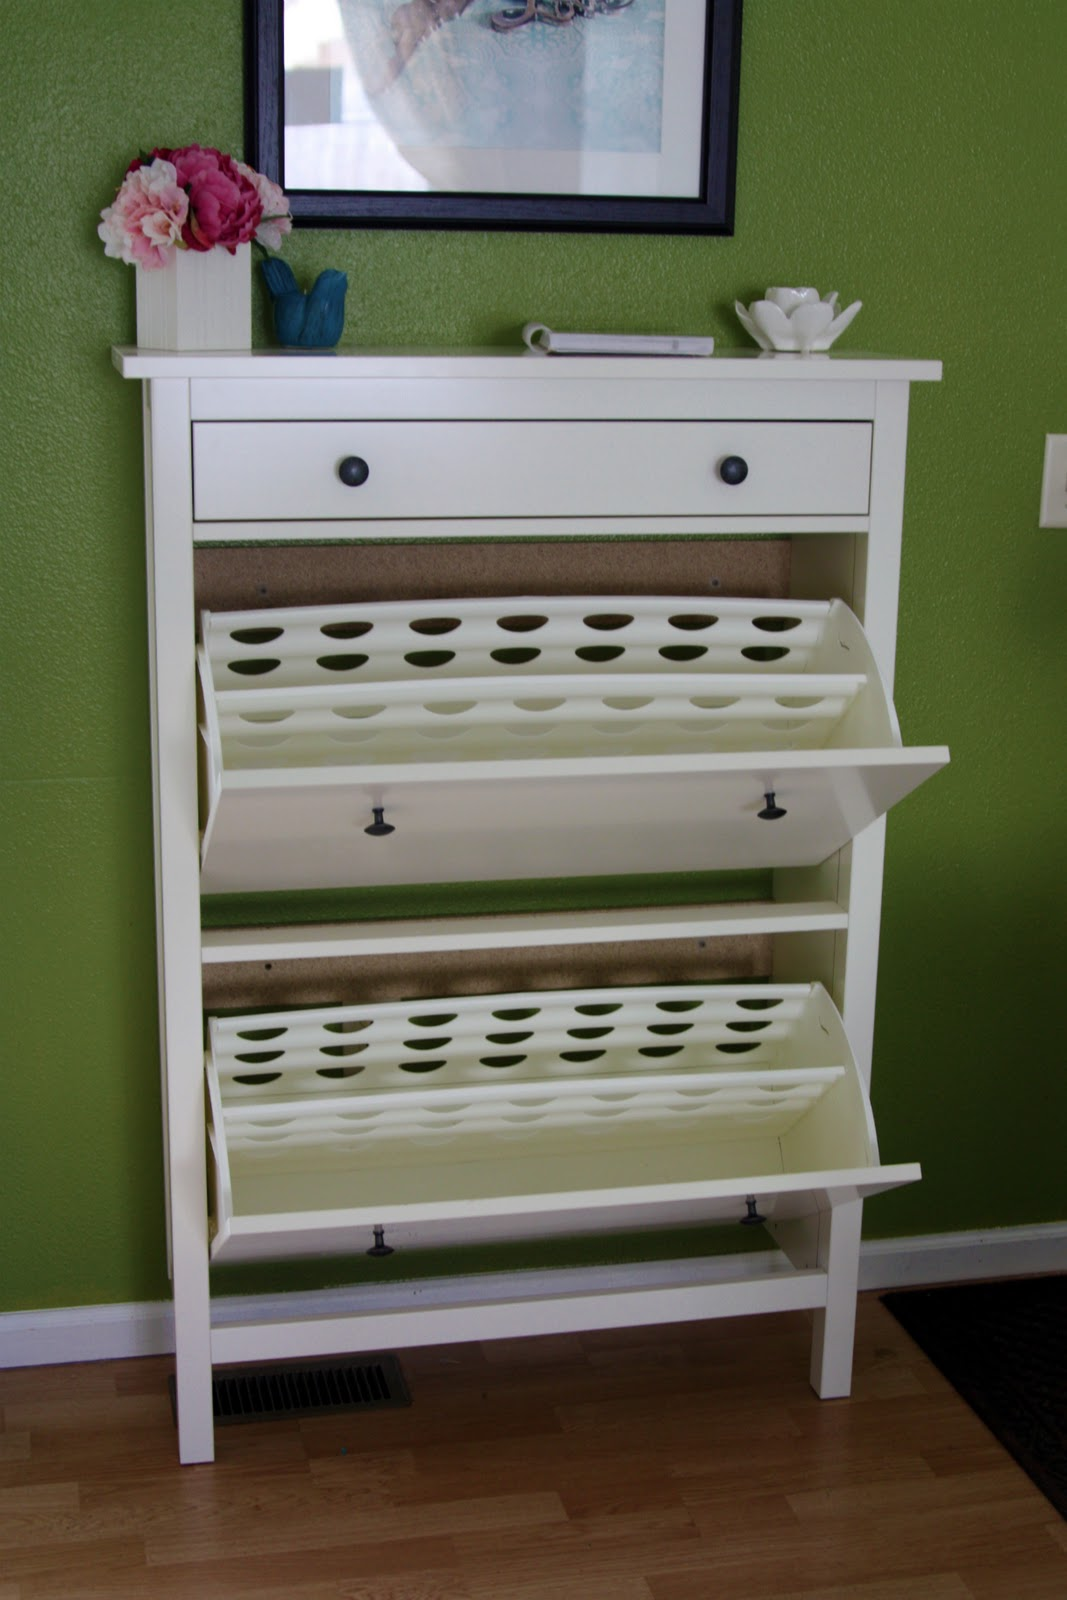 iheart organizing april challenge project purge shoes. Black Bedroom Furniture Sets. Home Design Ideas